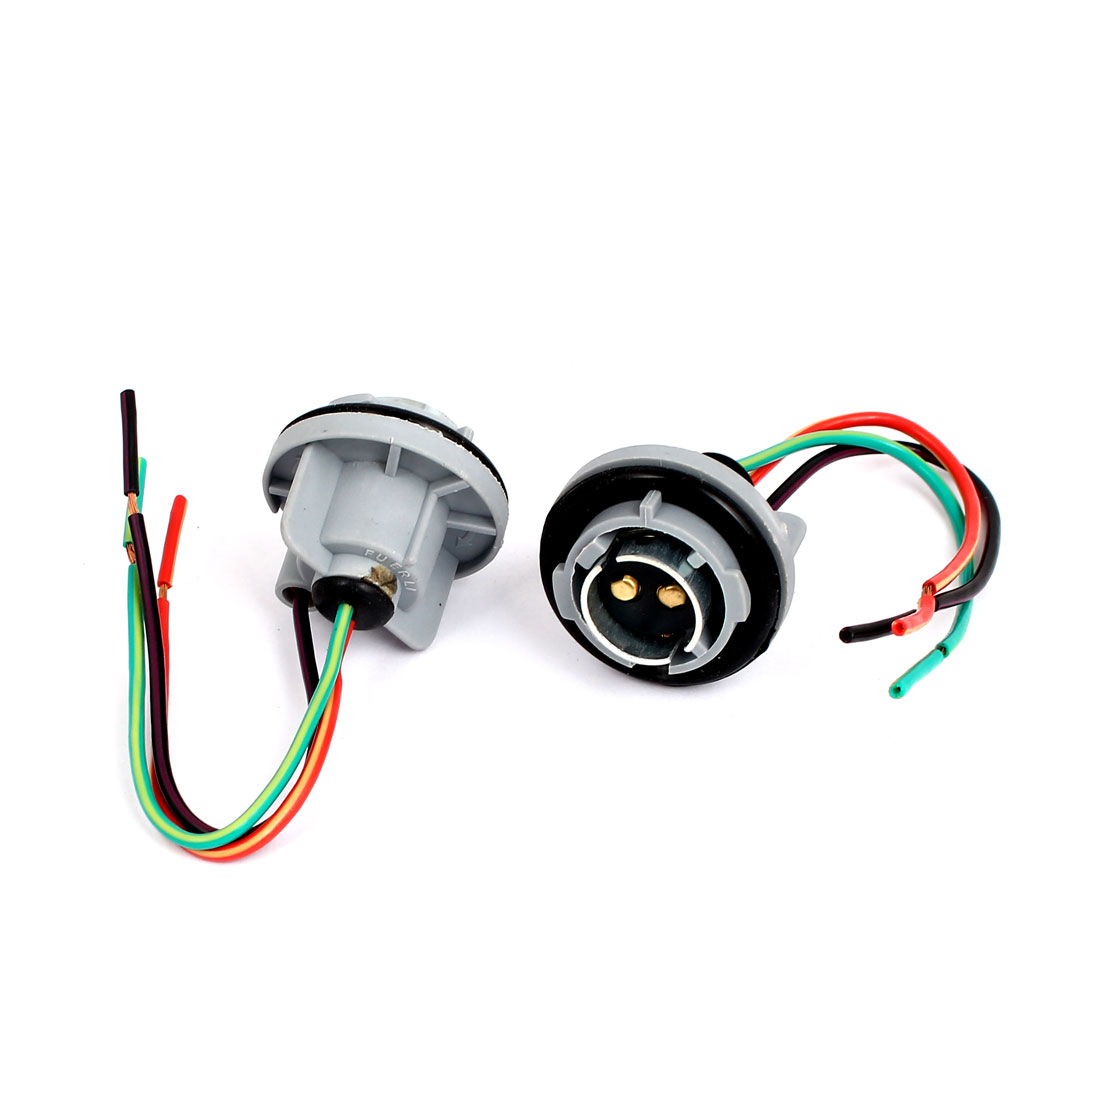 2 Pcs 1157 Turning Signal Lamp Light Socket Connection Harness Wire Replacement for Car